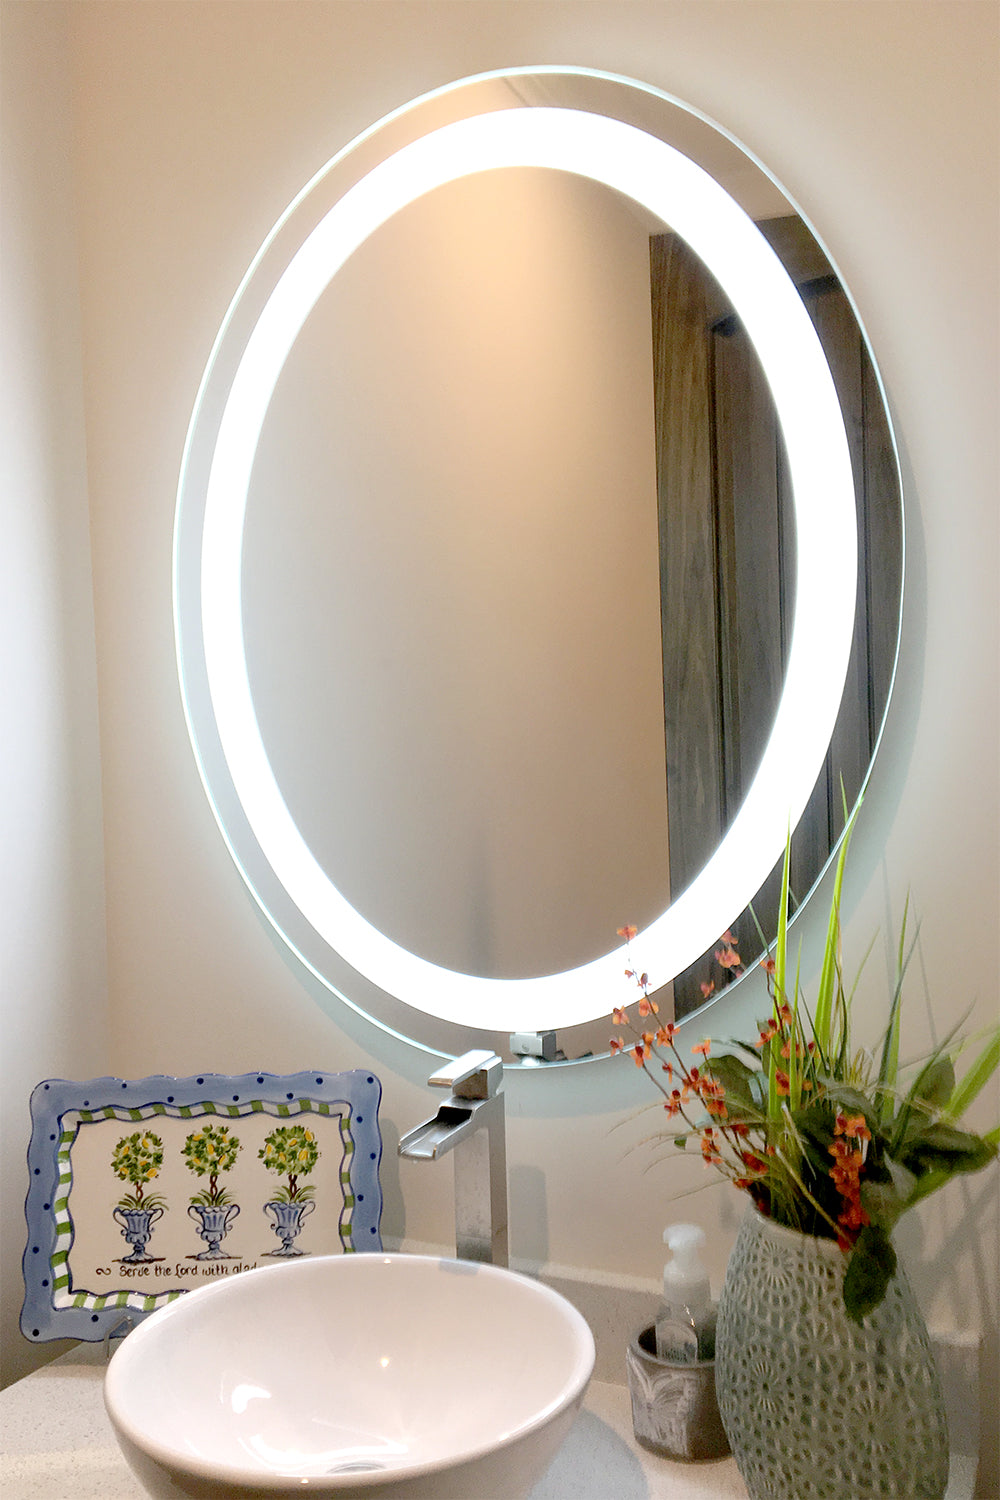 Front Lighted Led Bathroom Vanity Mirror 30 X 36 Oval Mirrors Marble